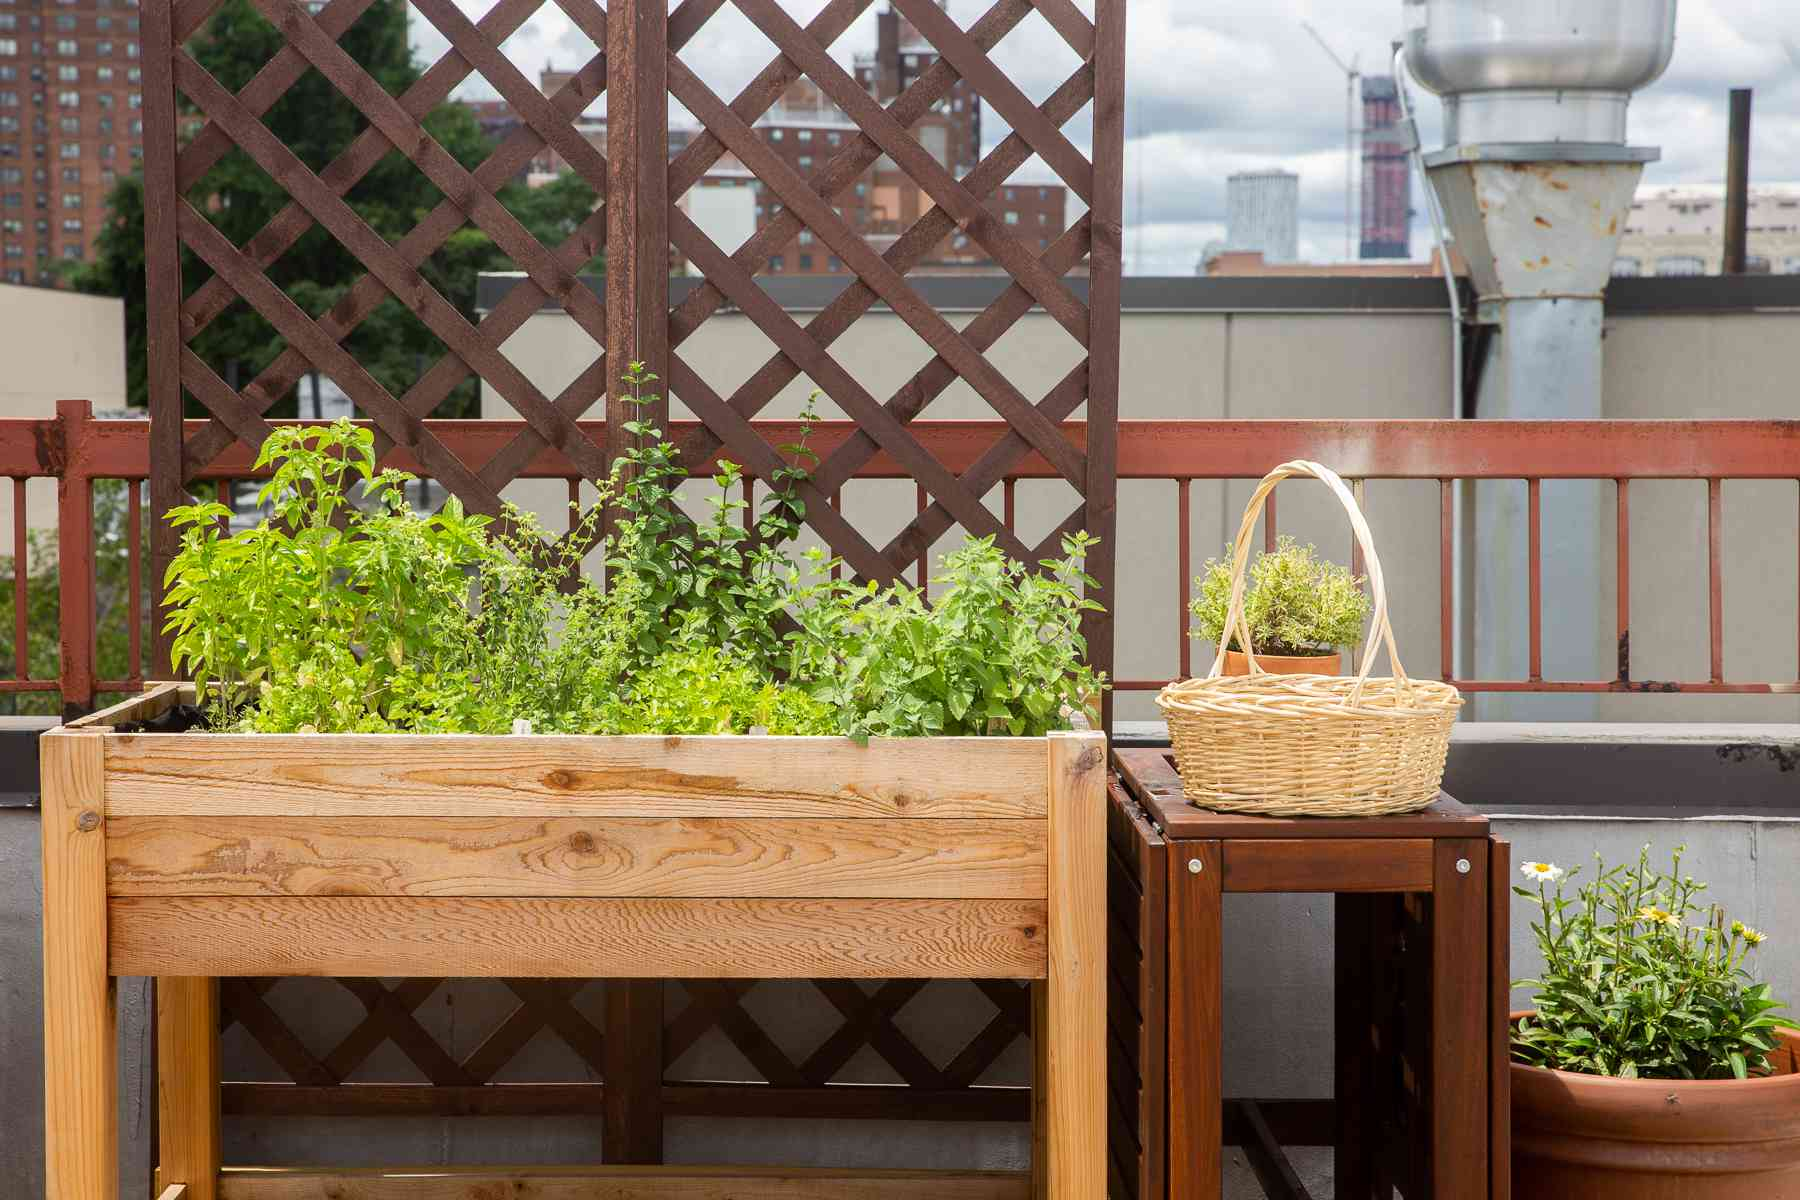 Raised garden bed next to table with basket and plants in front of trellis